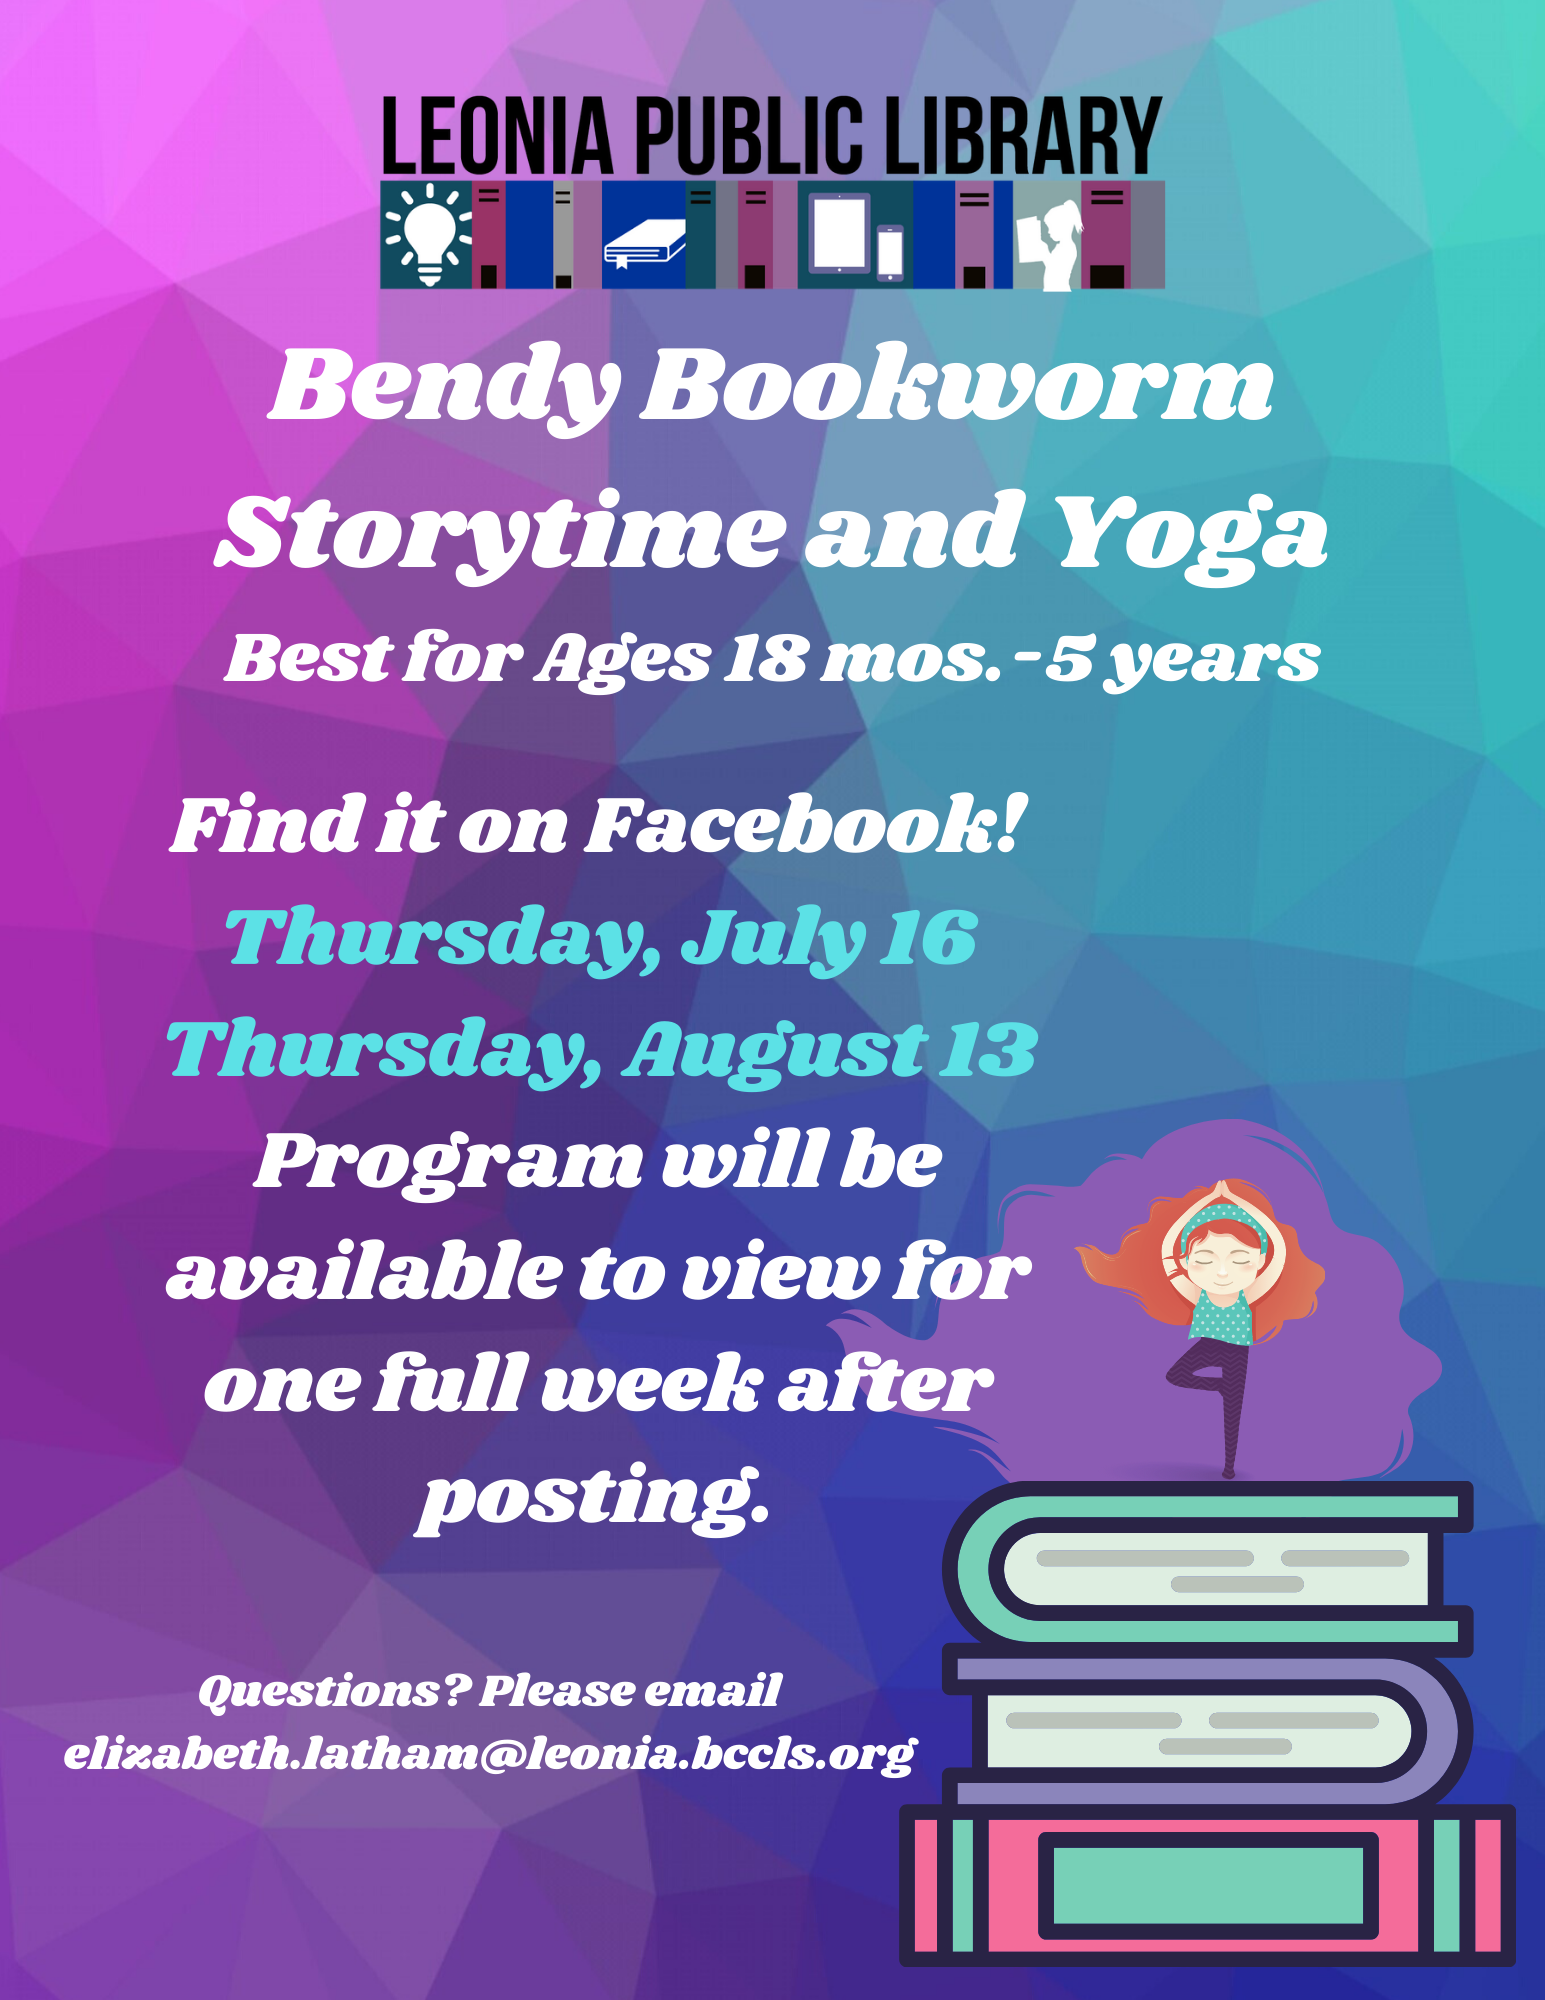 Bendy Bookworm - Stories and Yoga for Kids